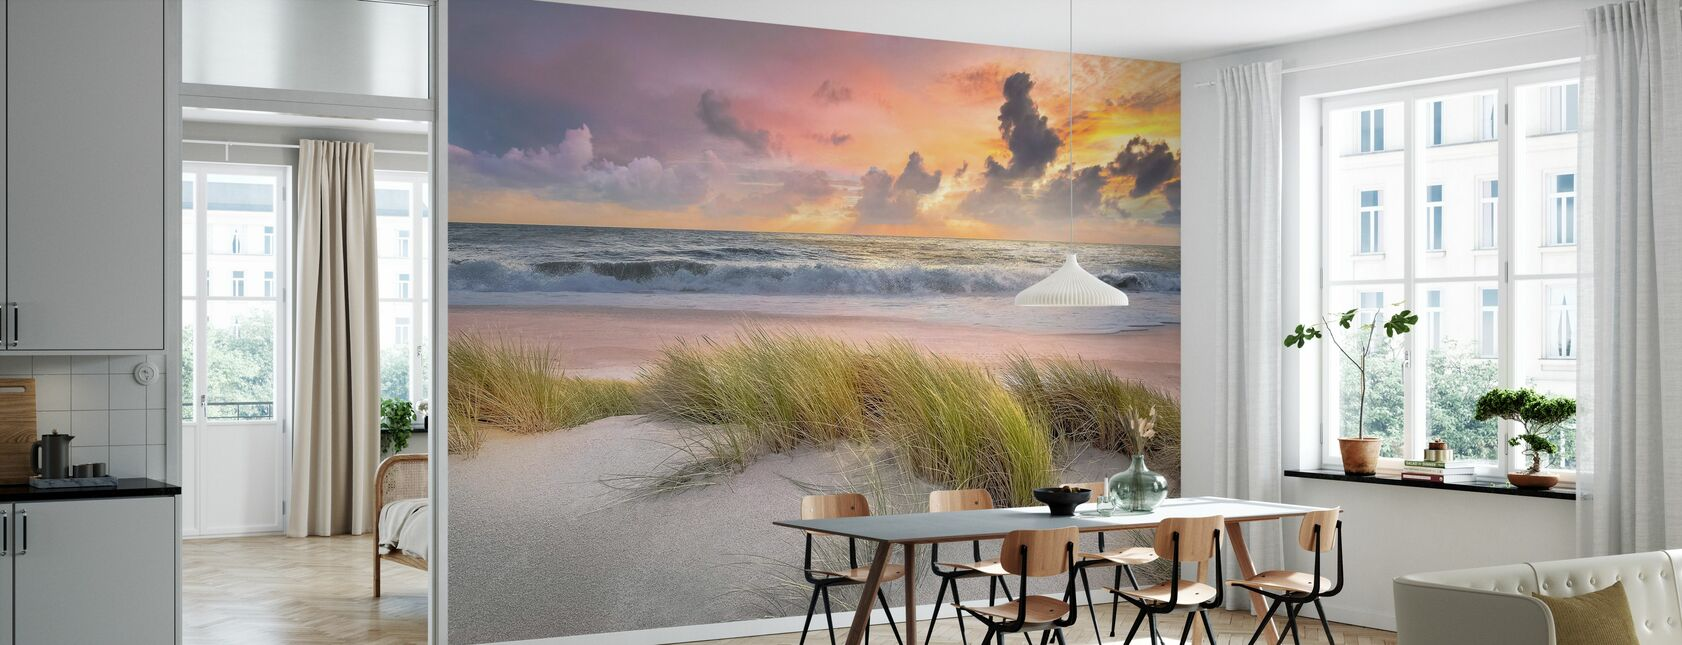 Grass in Beach Sand - Wallpaper - Kitchen